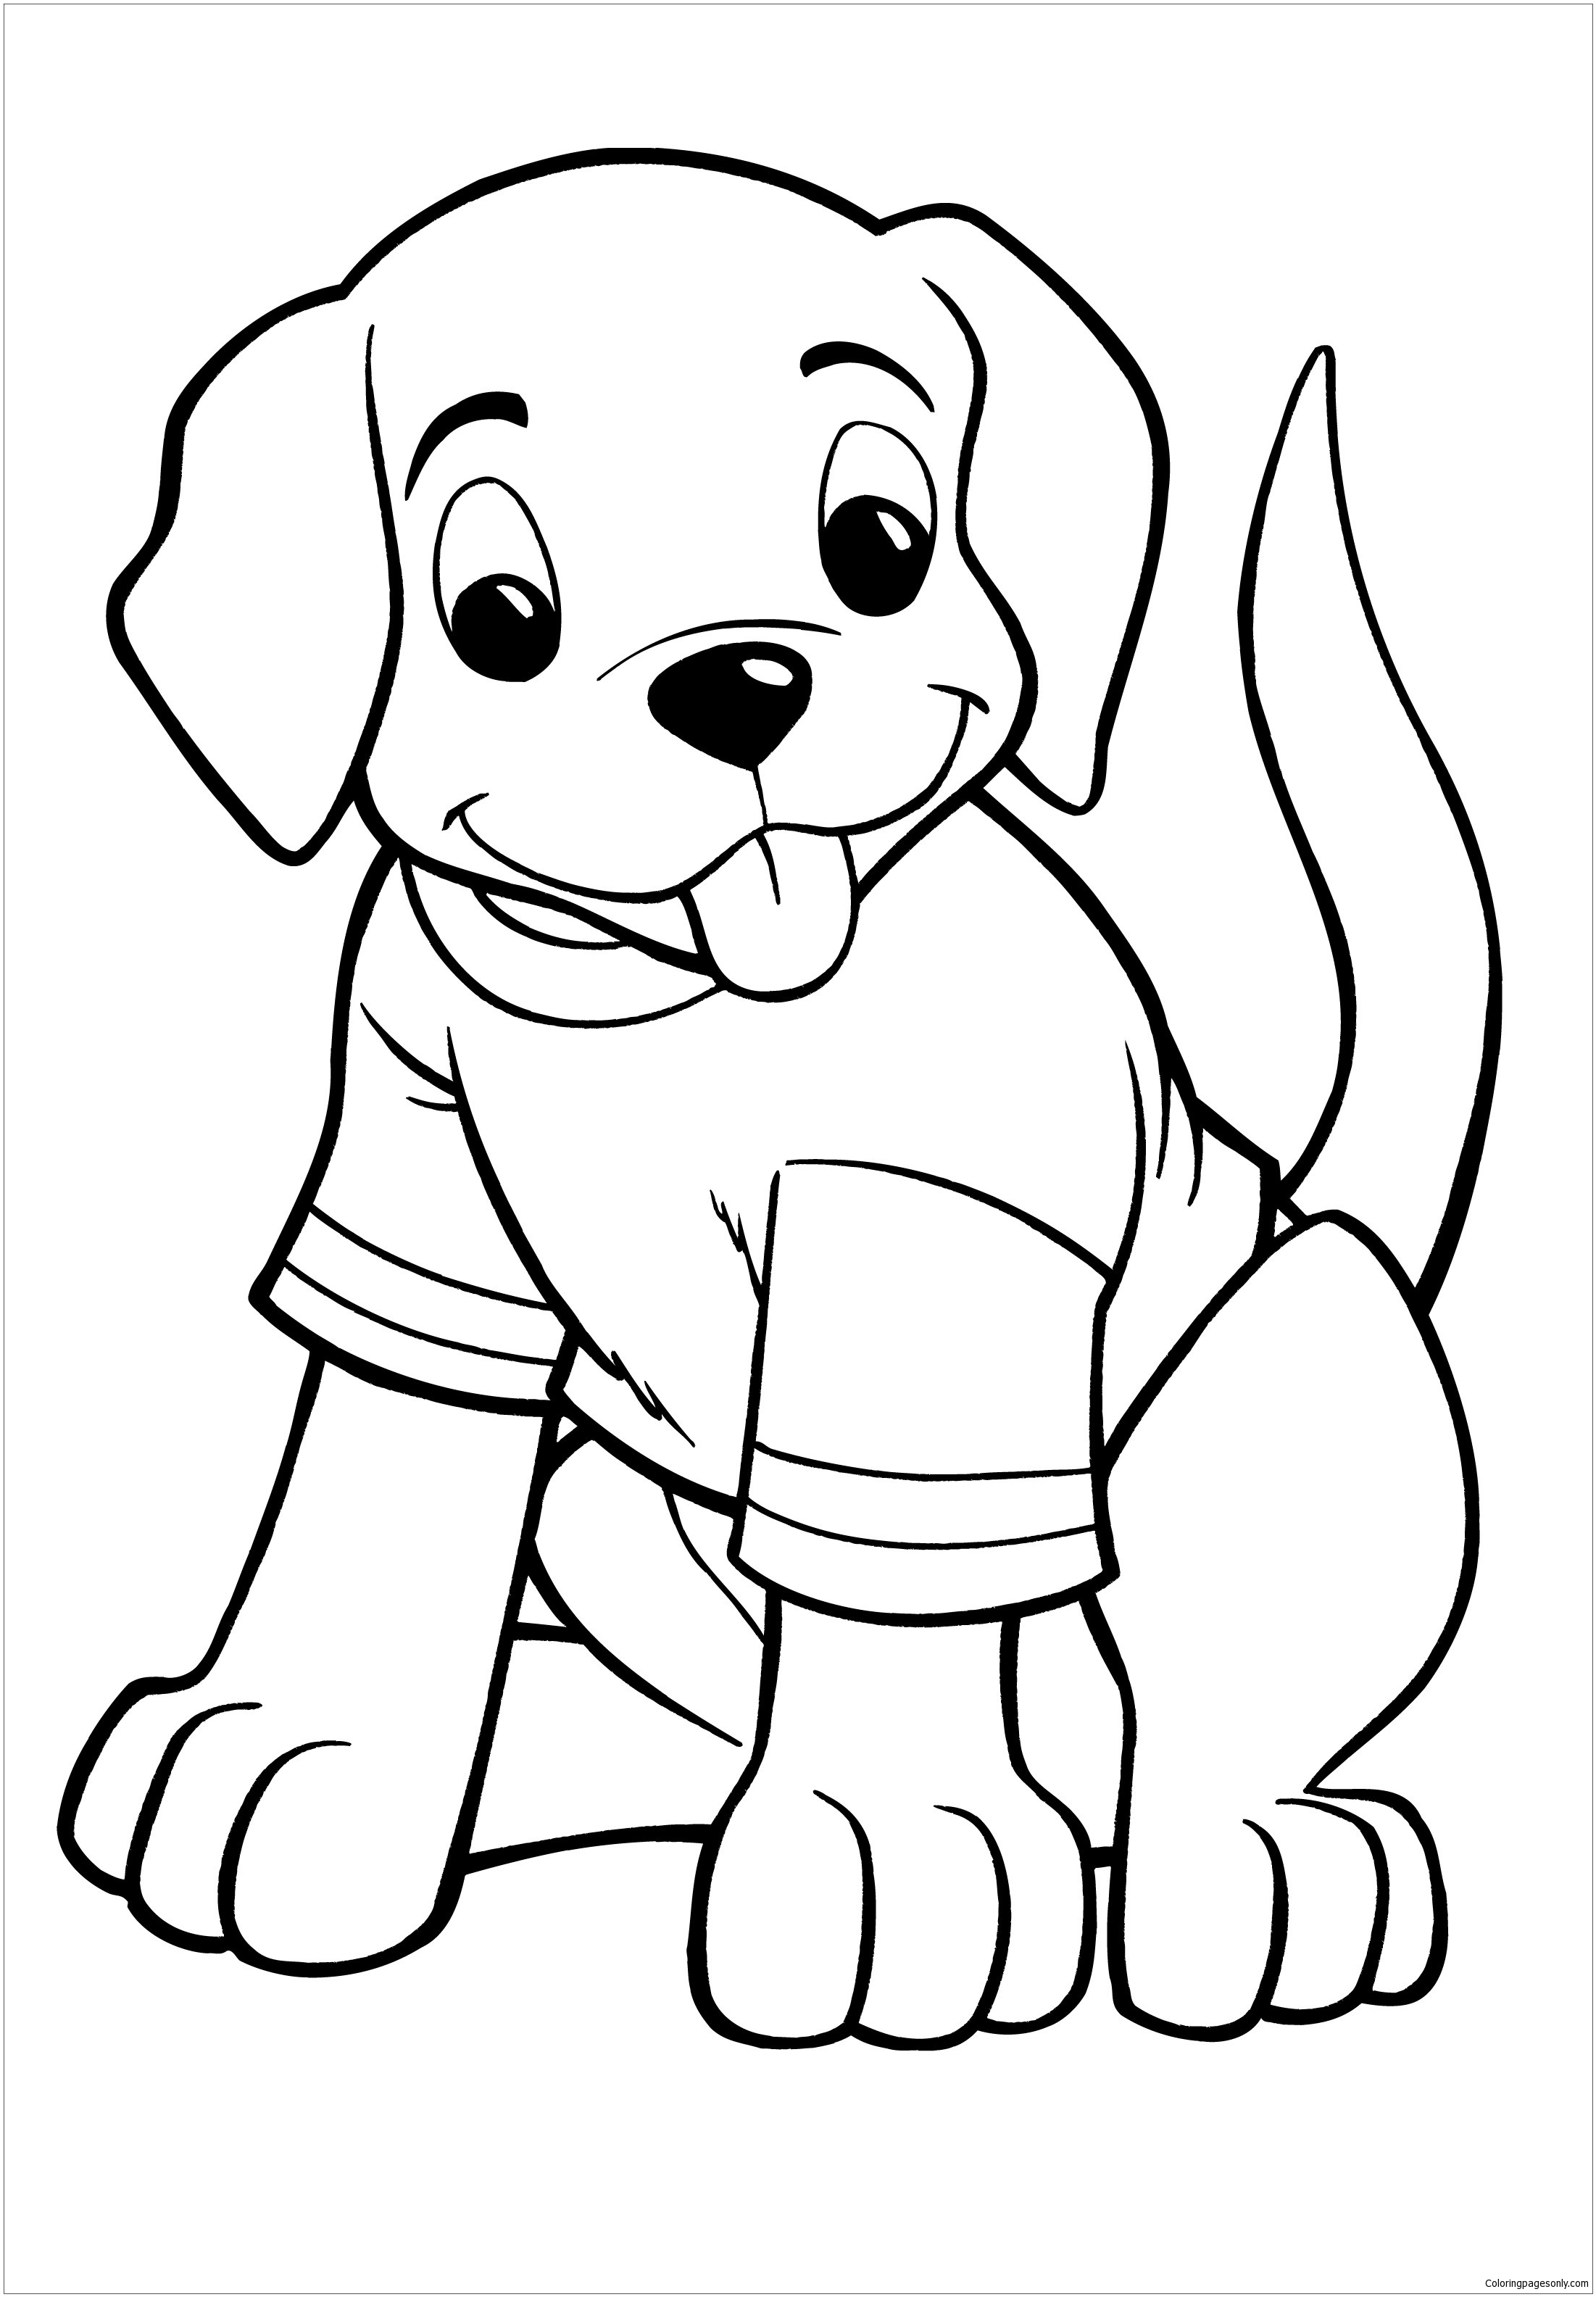 coloring pages to print dogs free printable dogs and puppies coloring pages for kids print dogs pages coloring to